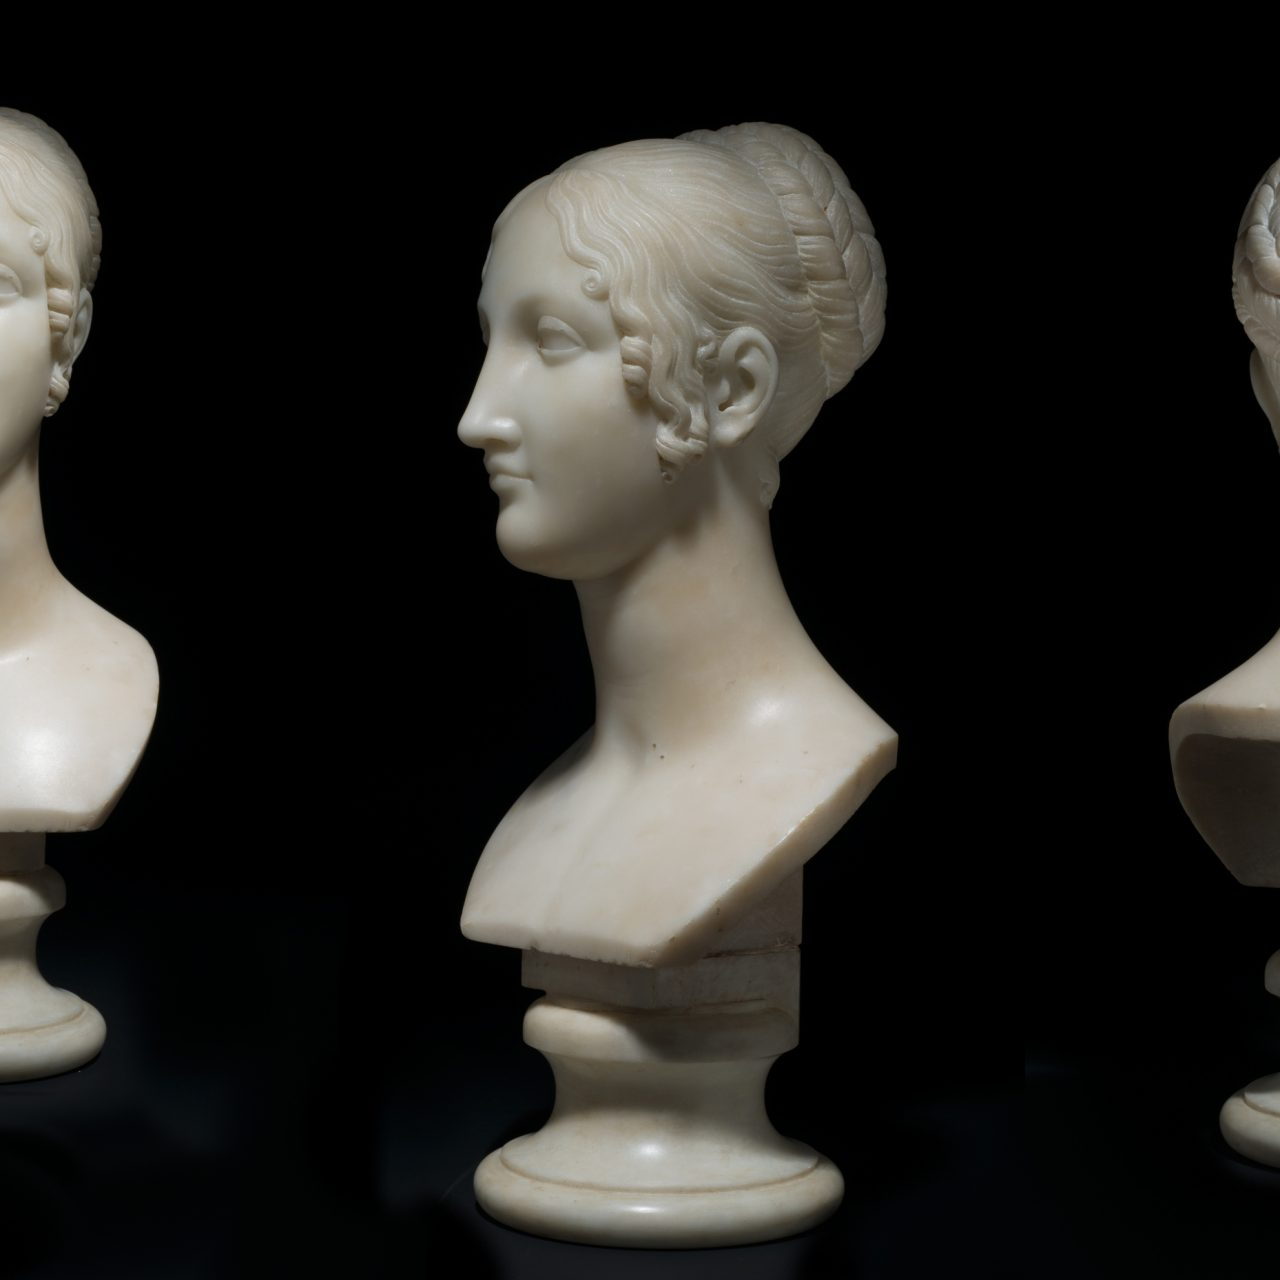 WORLD EXCLUSIVE – Late Marble Bust by Neoclassical Sculptor Antonio Canova To Be Auctioned For the First Time